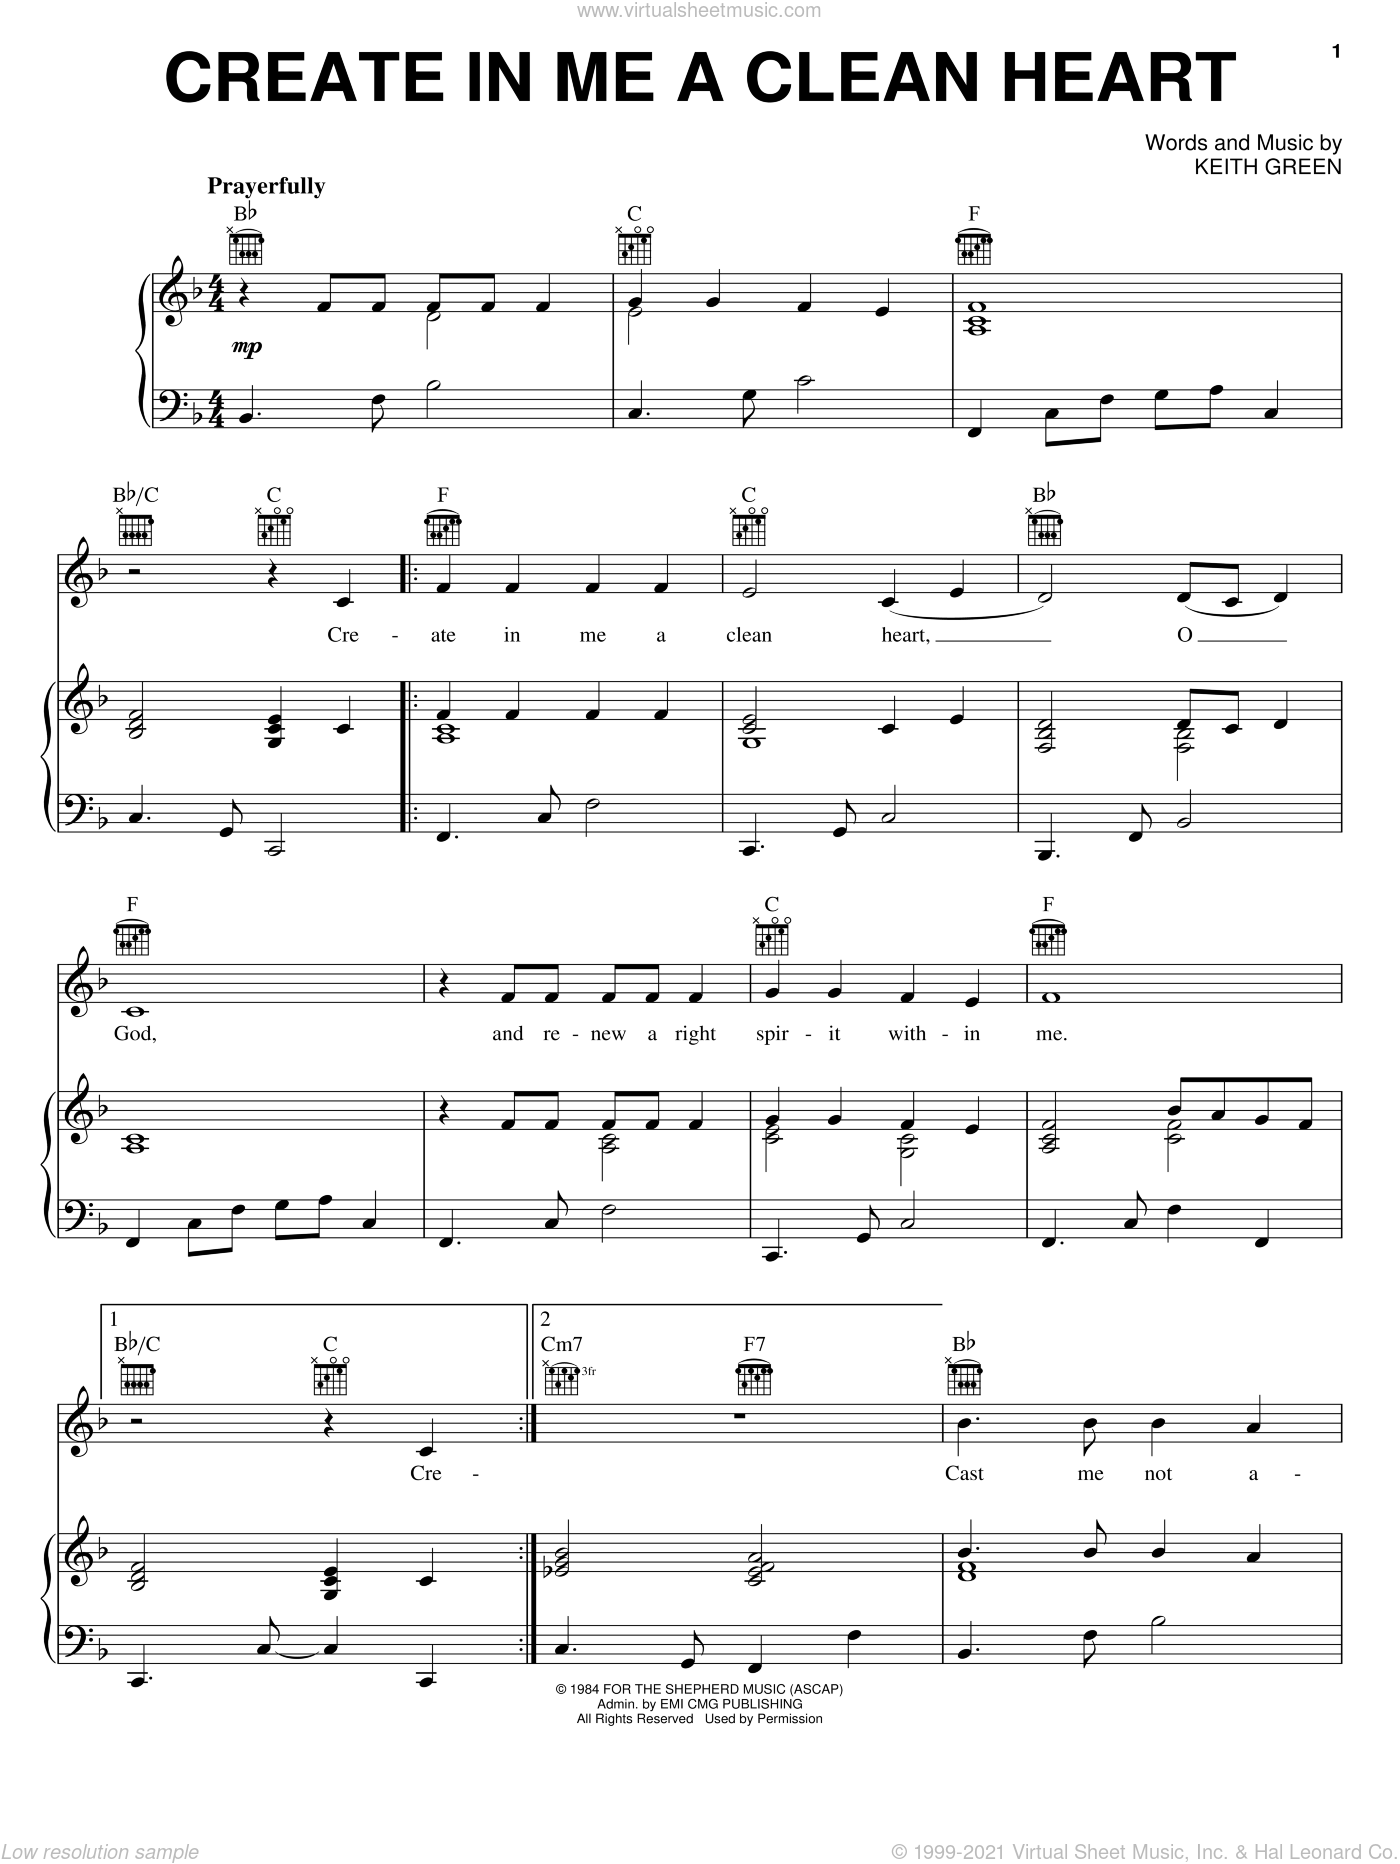 Create In Me A Clean Heart sheet music for voice, piano or guitar by Keith Green, intermediate. Score Image Preview.